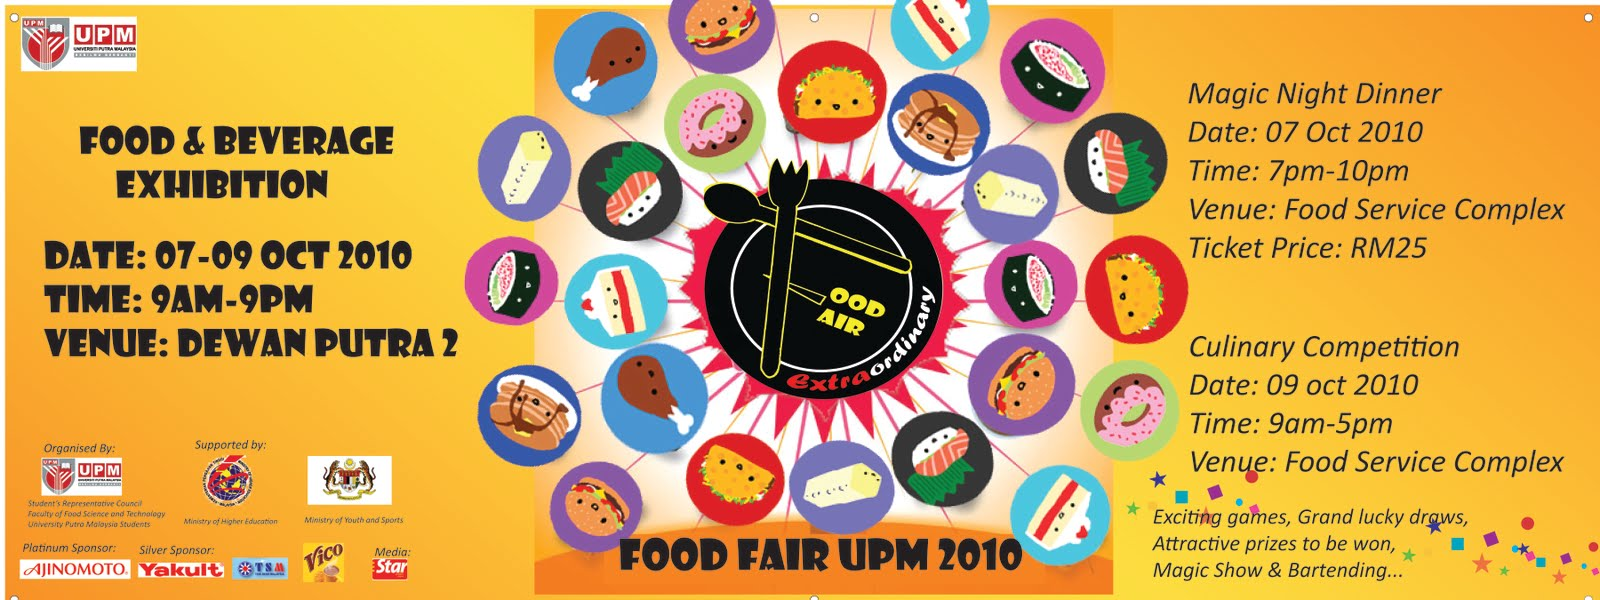 Food Fair UPM